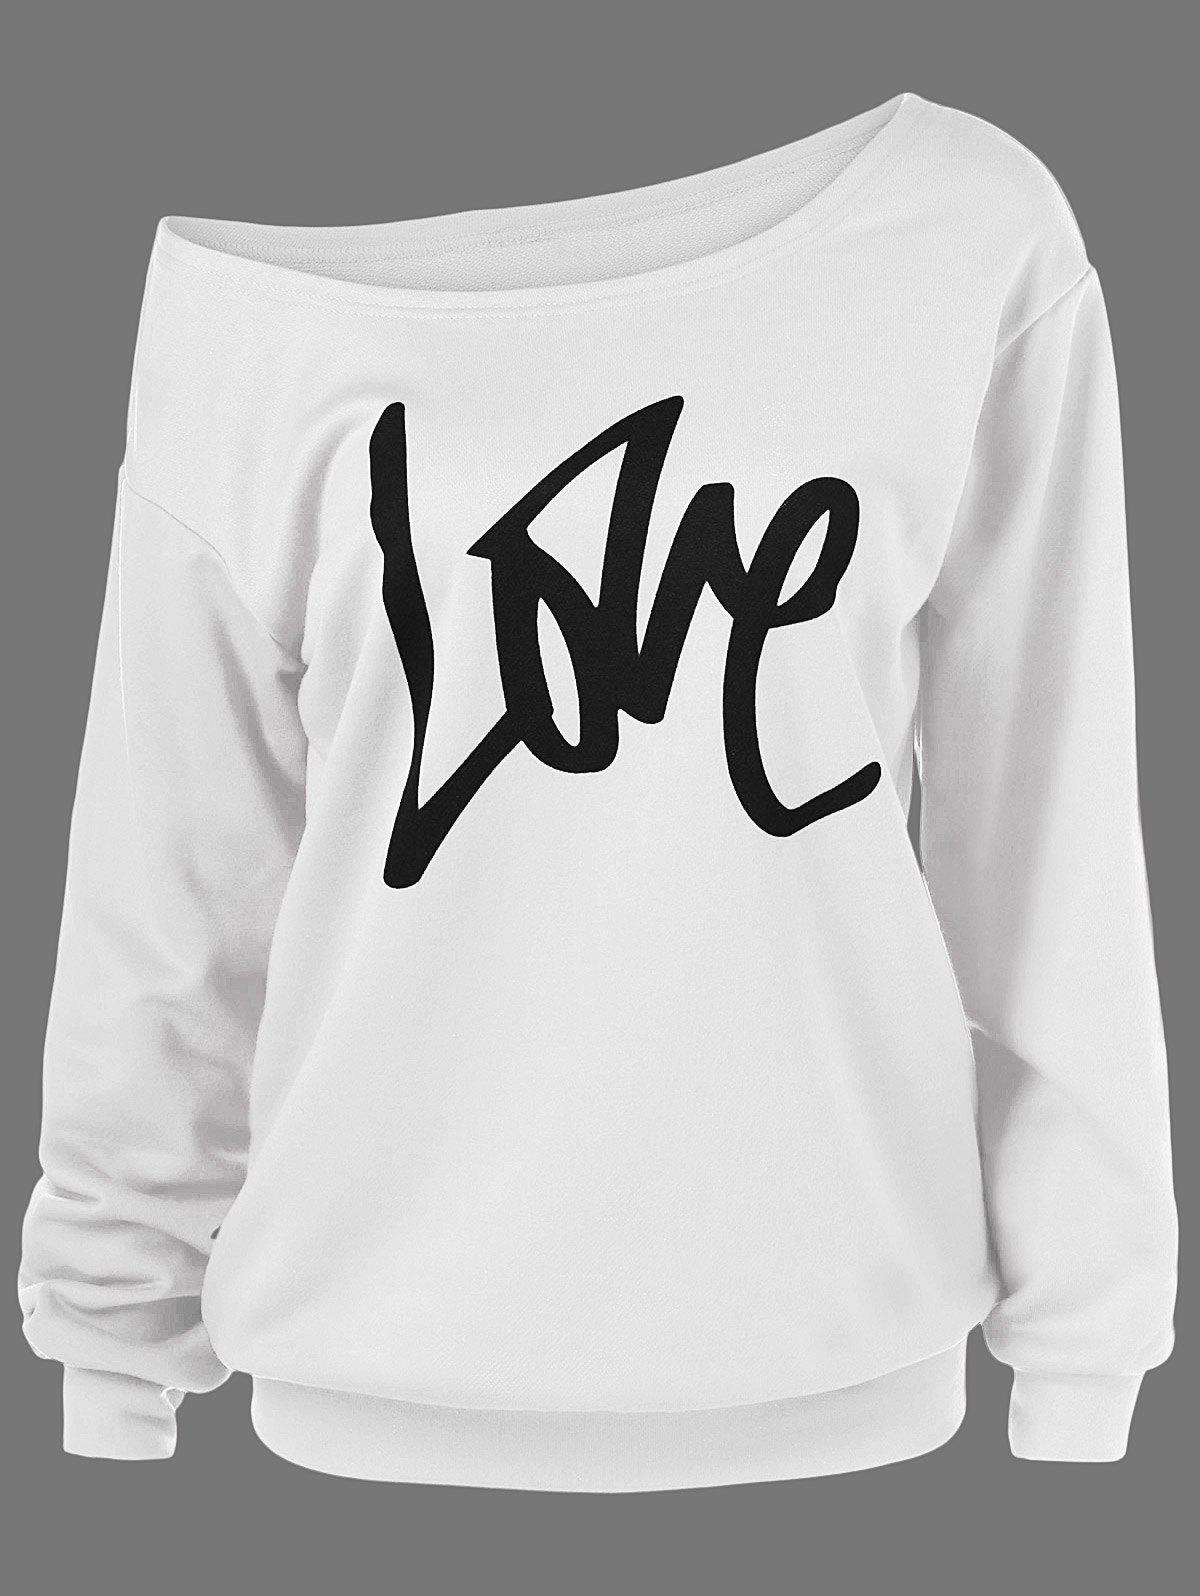 Skew Collar Love Plus Size SweatshirtWOMEN<br><br>Size: 5XL; Color: WHITE; Material: Polyester; Shirt Length: Regular; Sleeve Length: Full; Style: Casual; Pattern Style: Letter; Season: Fall,Spring; Weight: 0.3800kg; Package Contents: 1 x Sweatshirt;